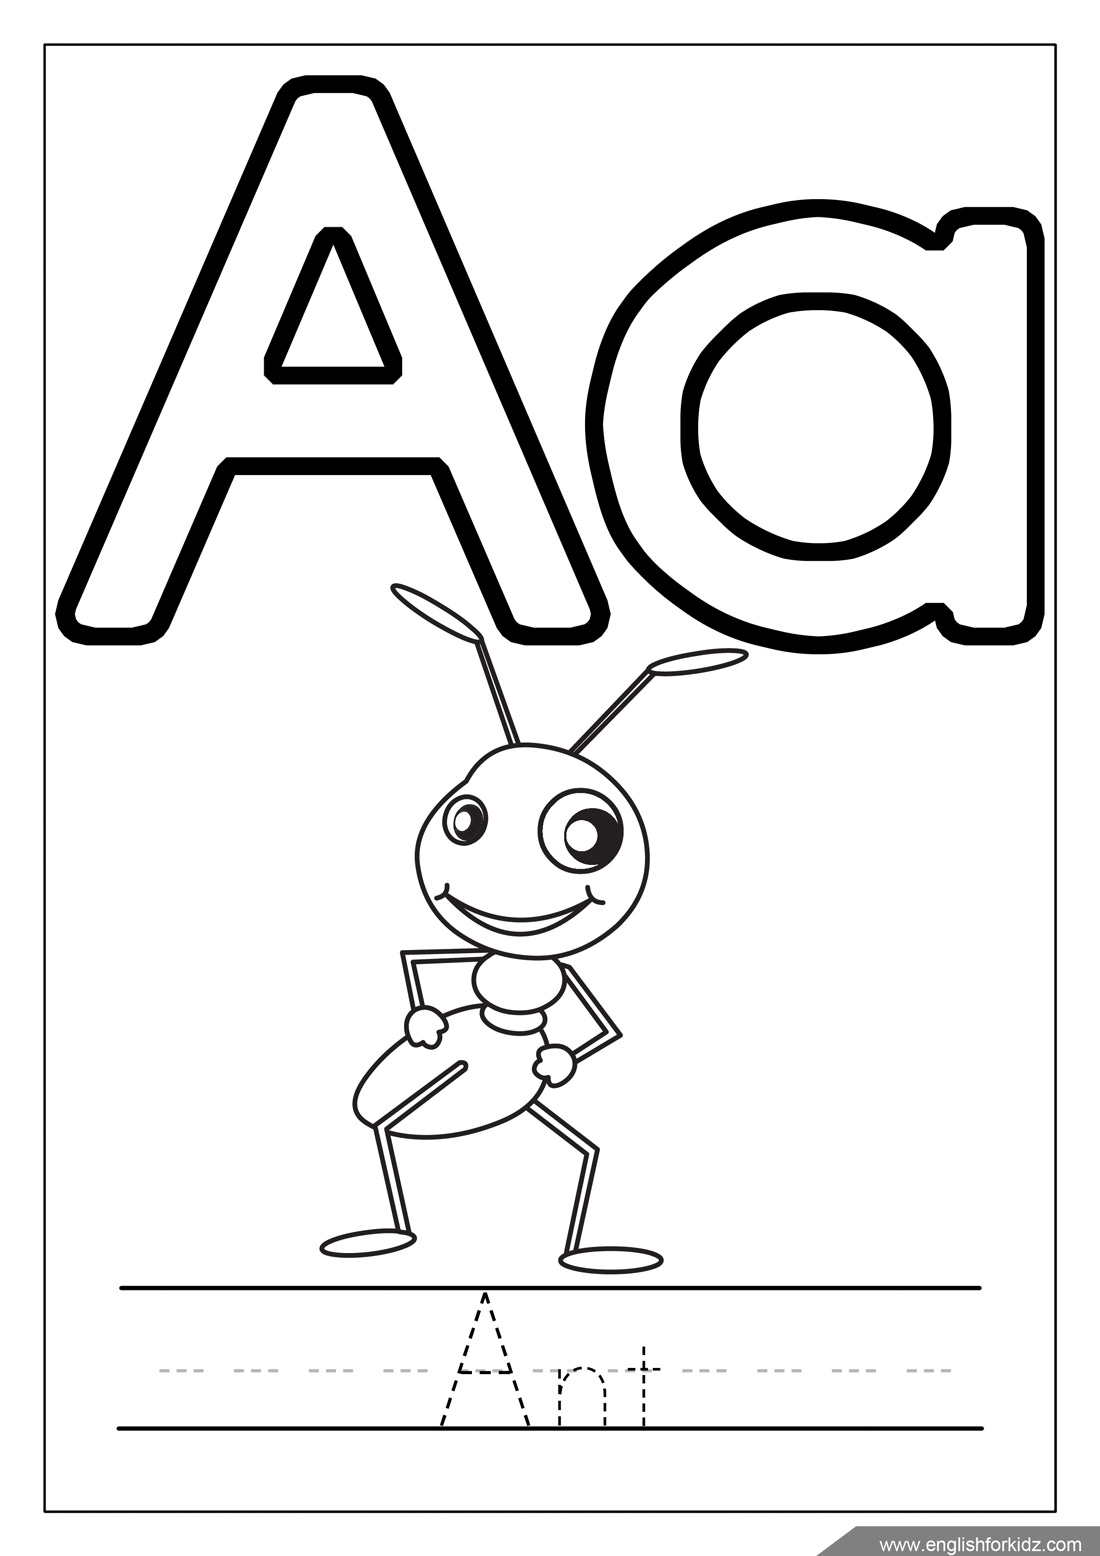 coloring pictures letter a fileclassic alphabet a at coloring pages for kids boys a pictures coloring letter